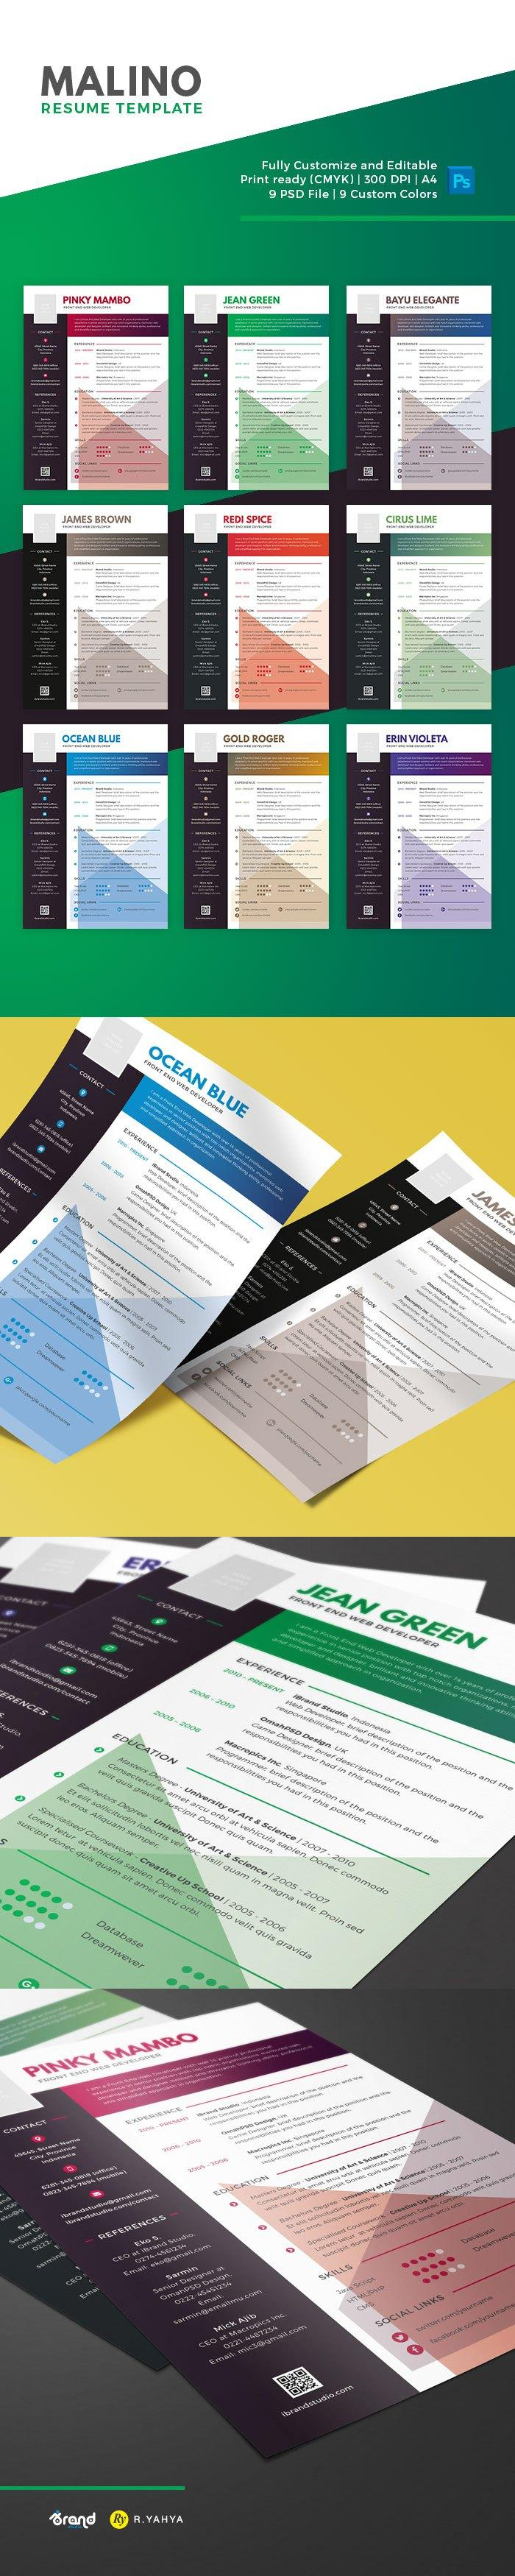 a totally free resume template in 9 awesome personalized colors malino come with simply and fashionable design very easy to modify and editable in - Totally Free Resume Template